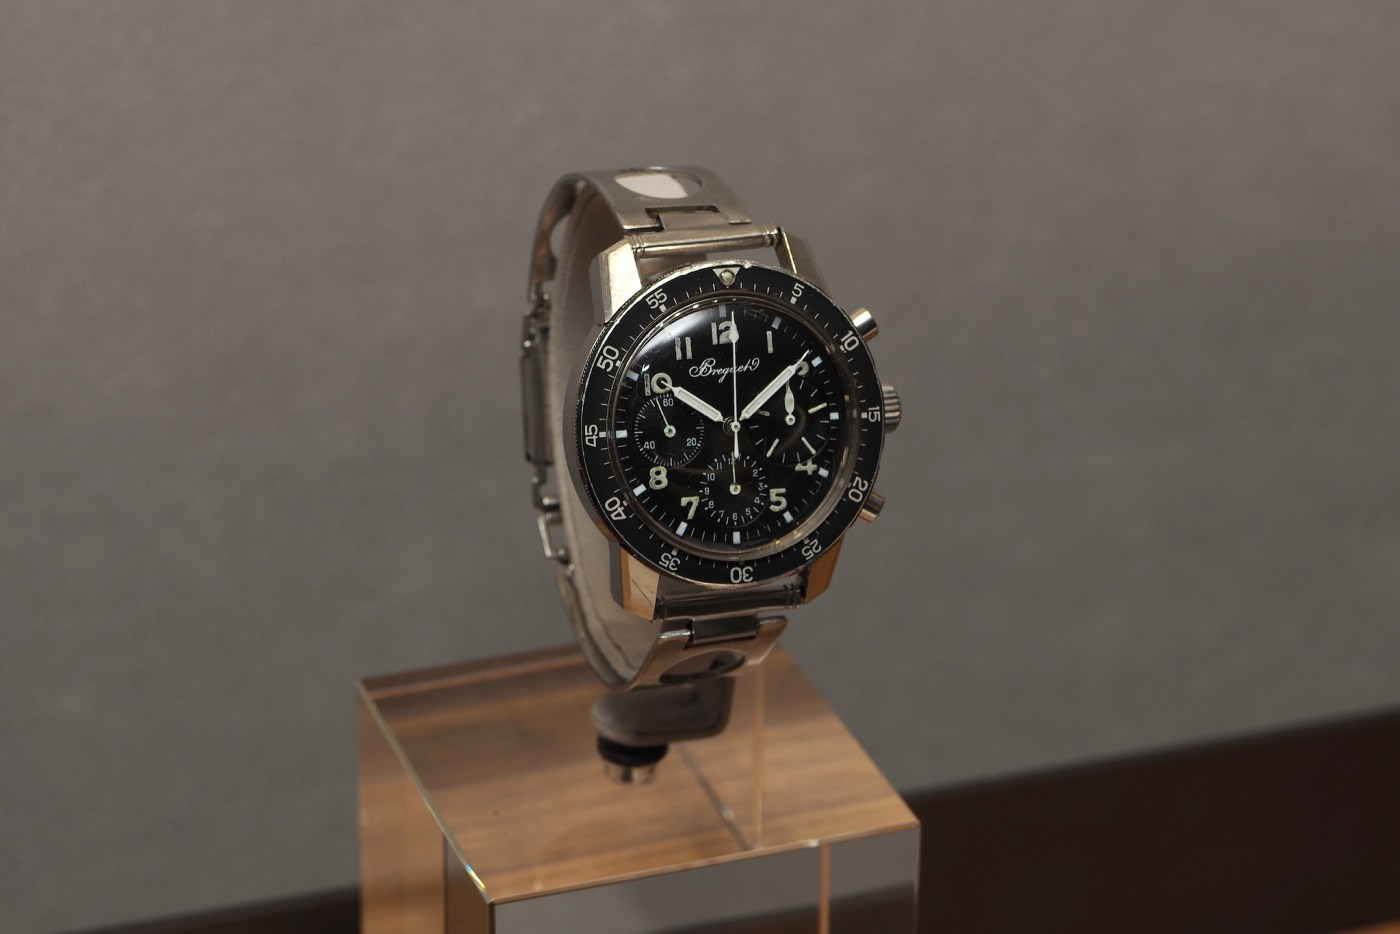 Breguet vintage Type 20 in 38 mm steel case with Tri-Compax dial